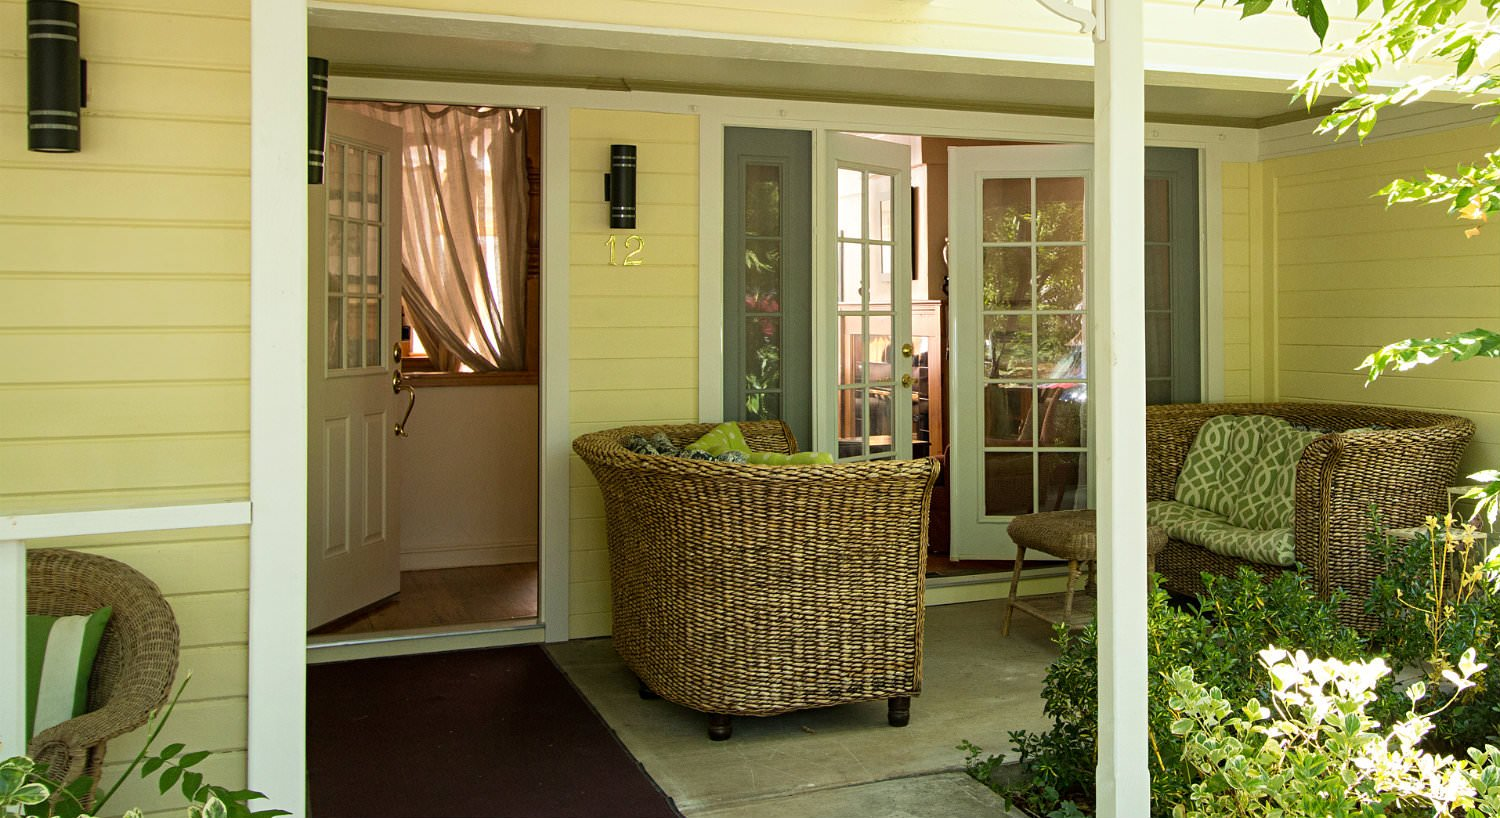 Covered patio with two wicker loveseats with green and white cushions in front of a partially open French door